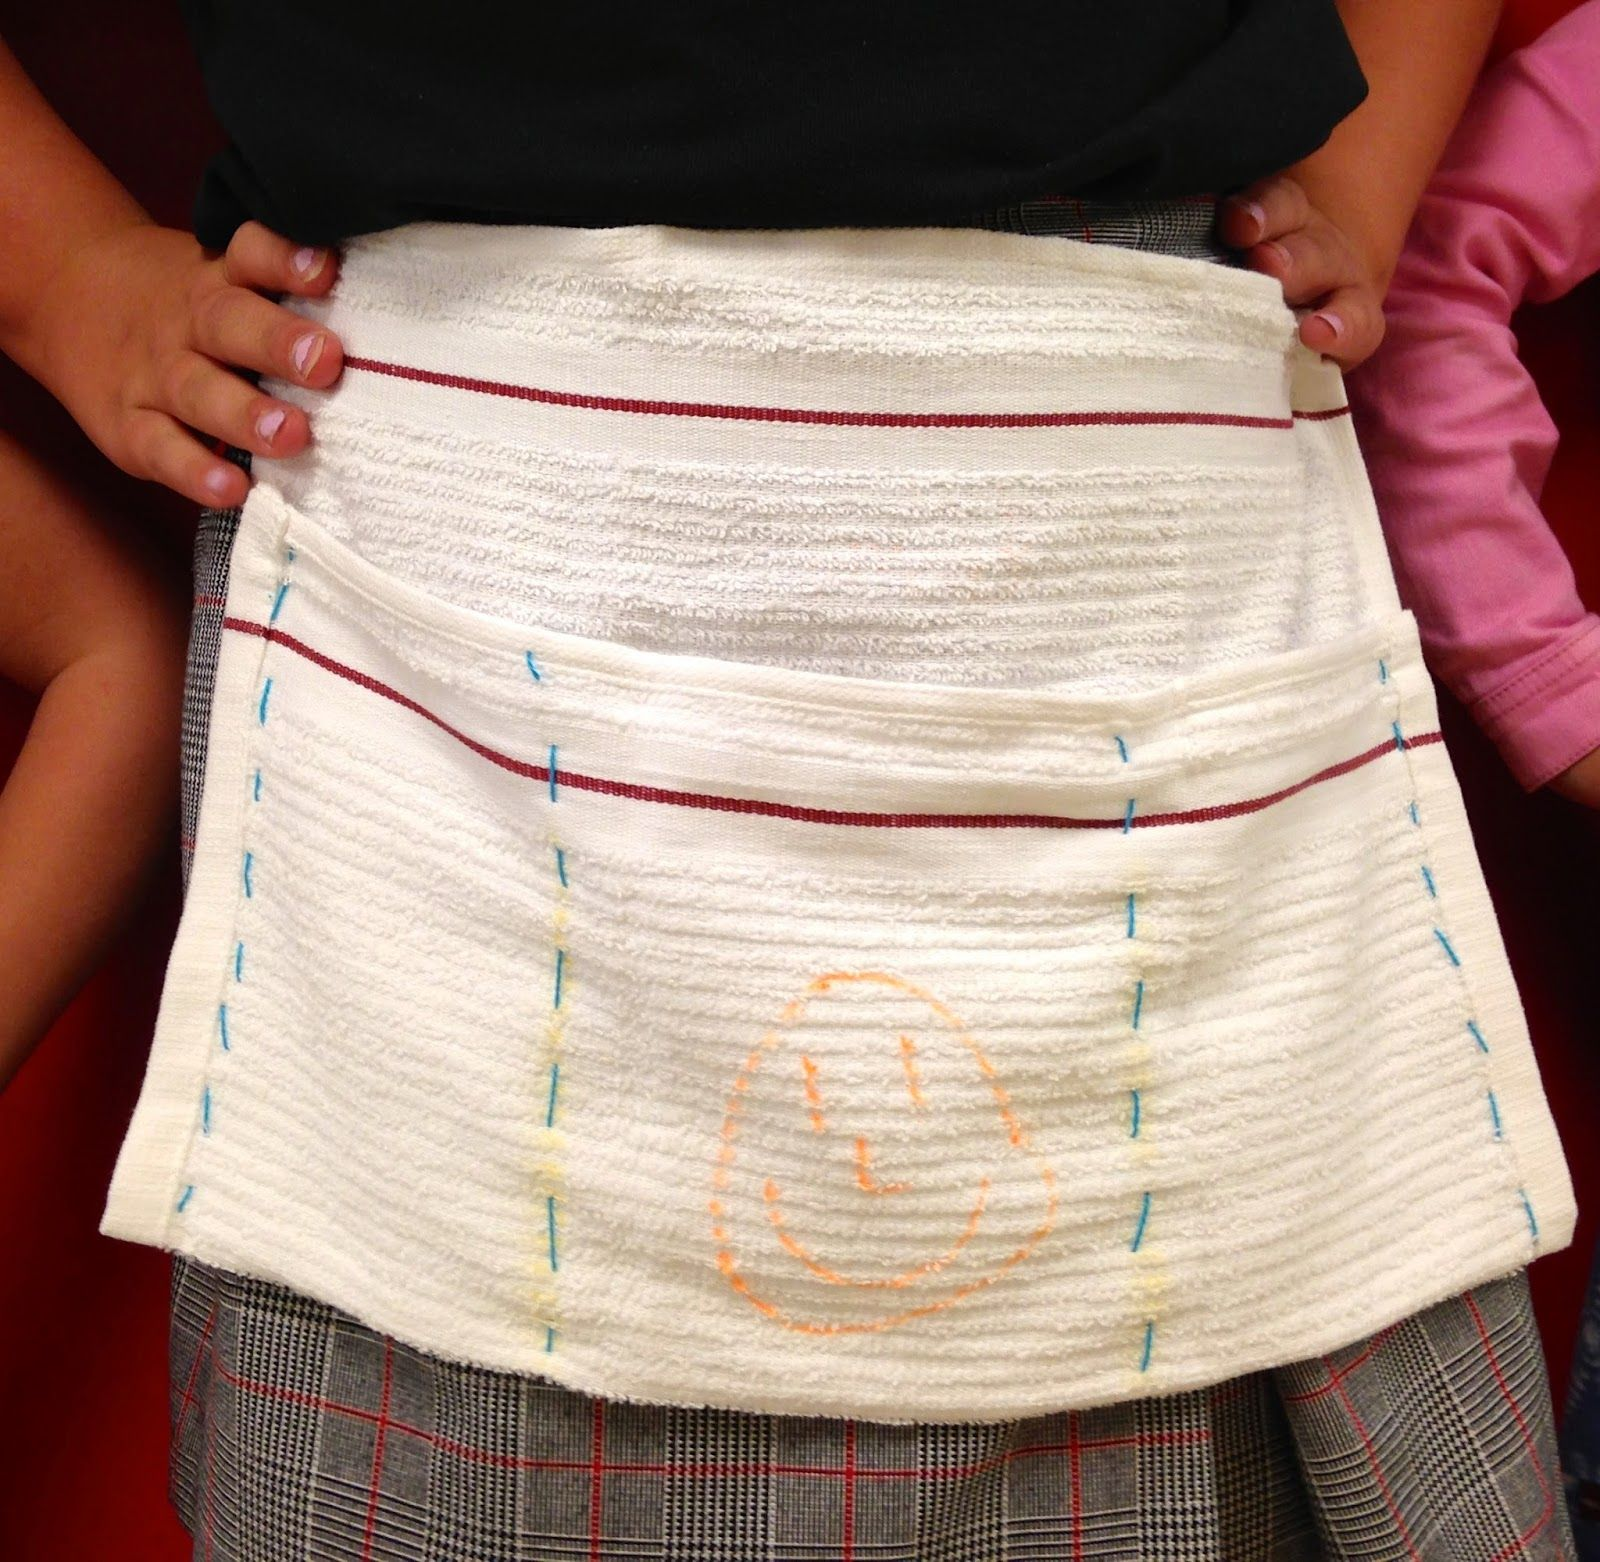 Hand Sew Aprons With Fabric Marker Decoration Maybe